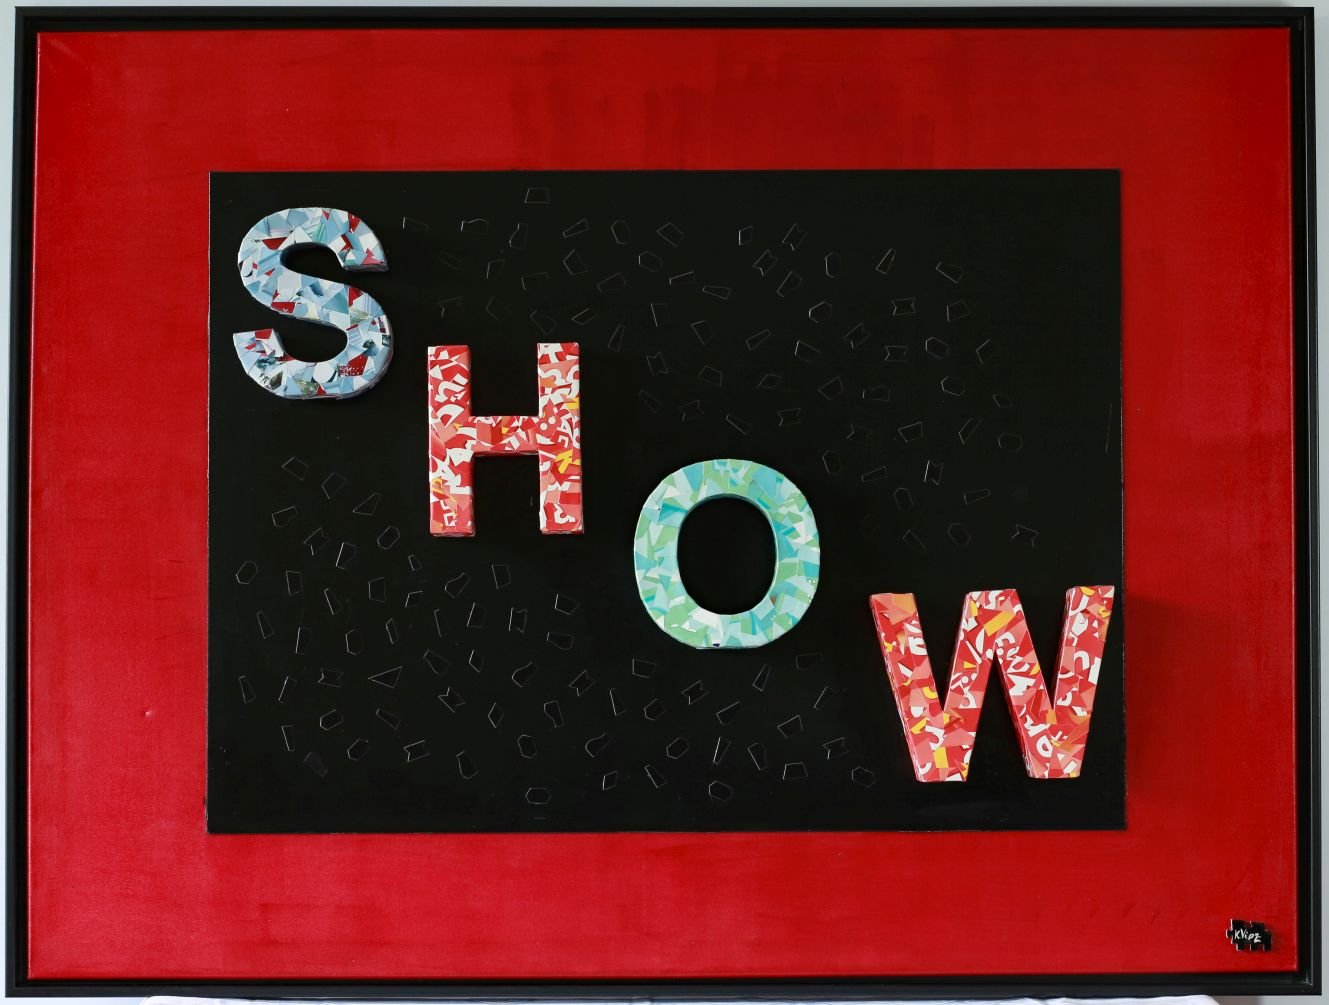 Show must go on – 2014